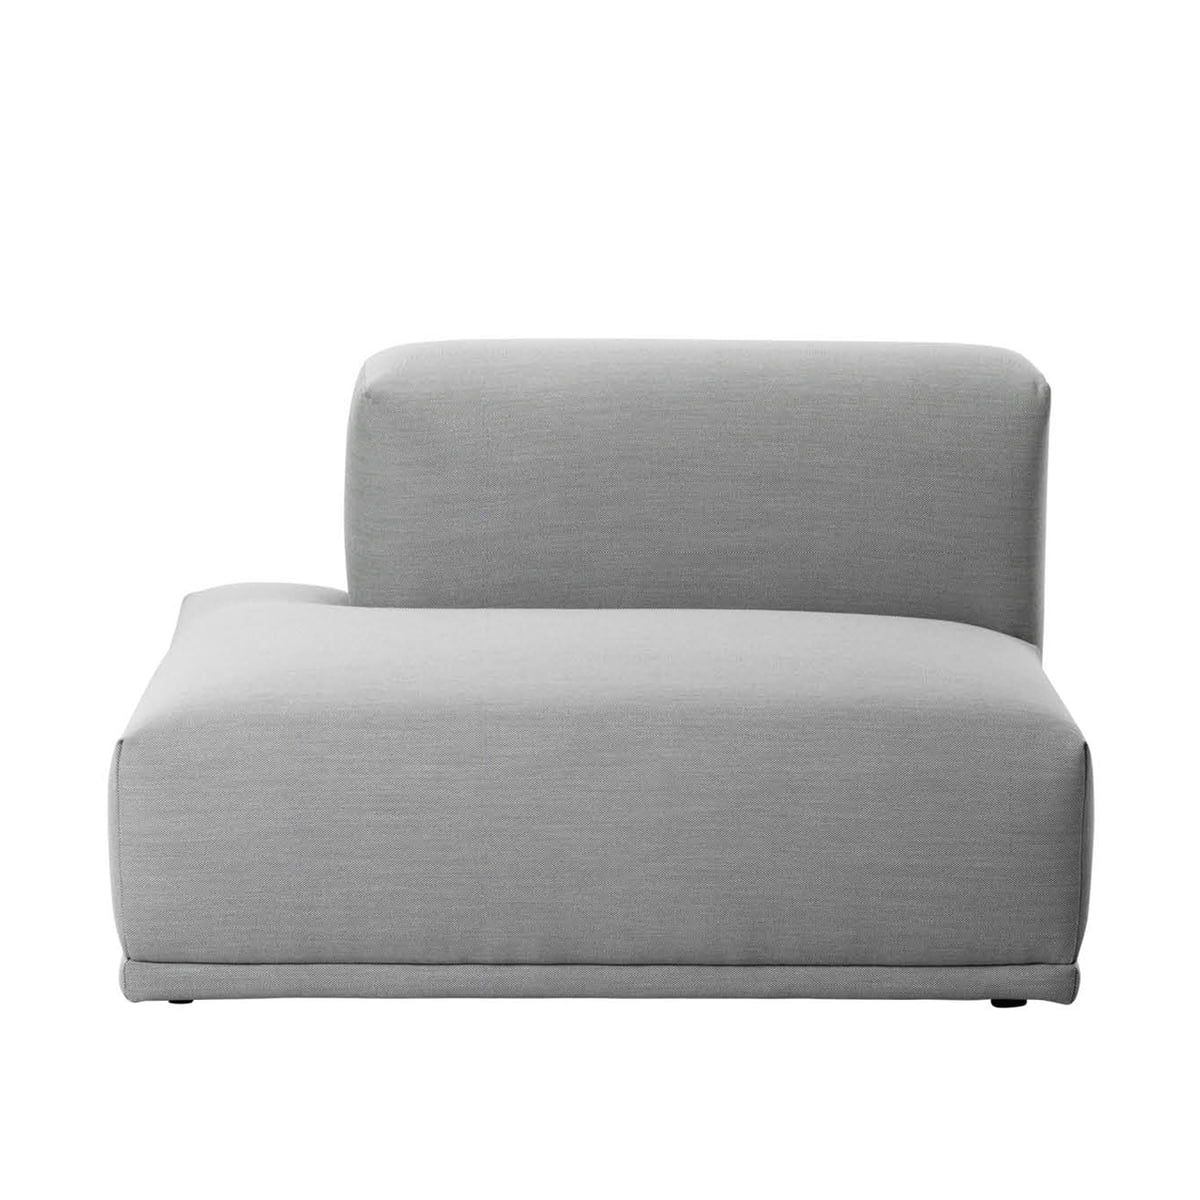 Connect sofa f modul